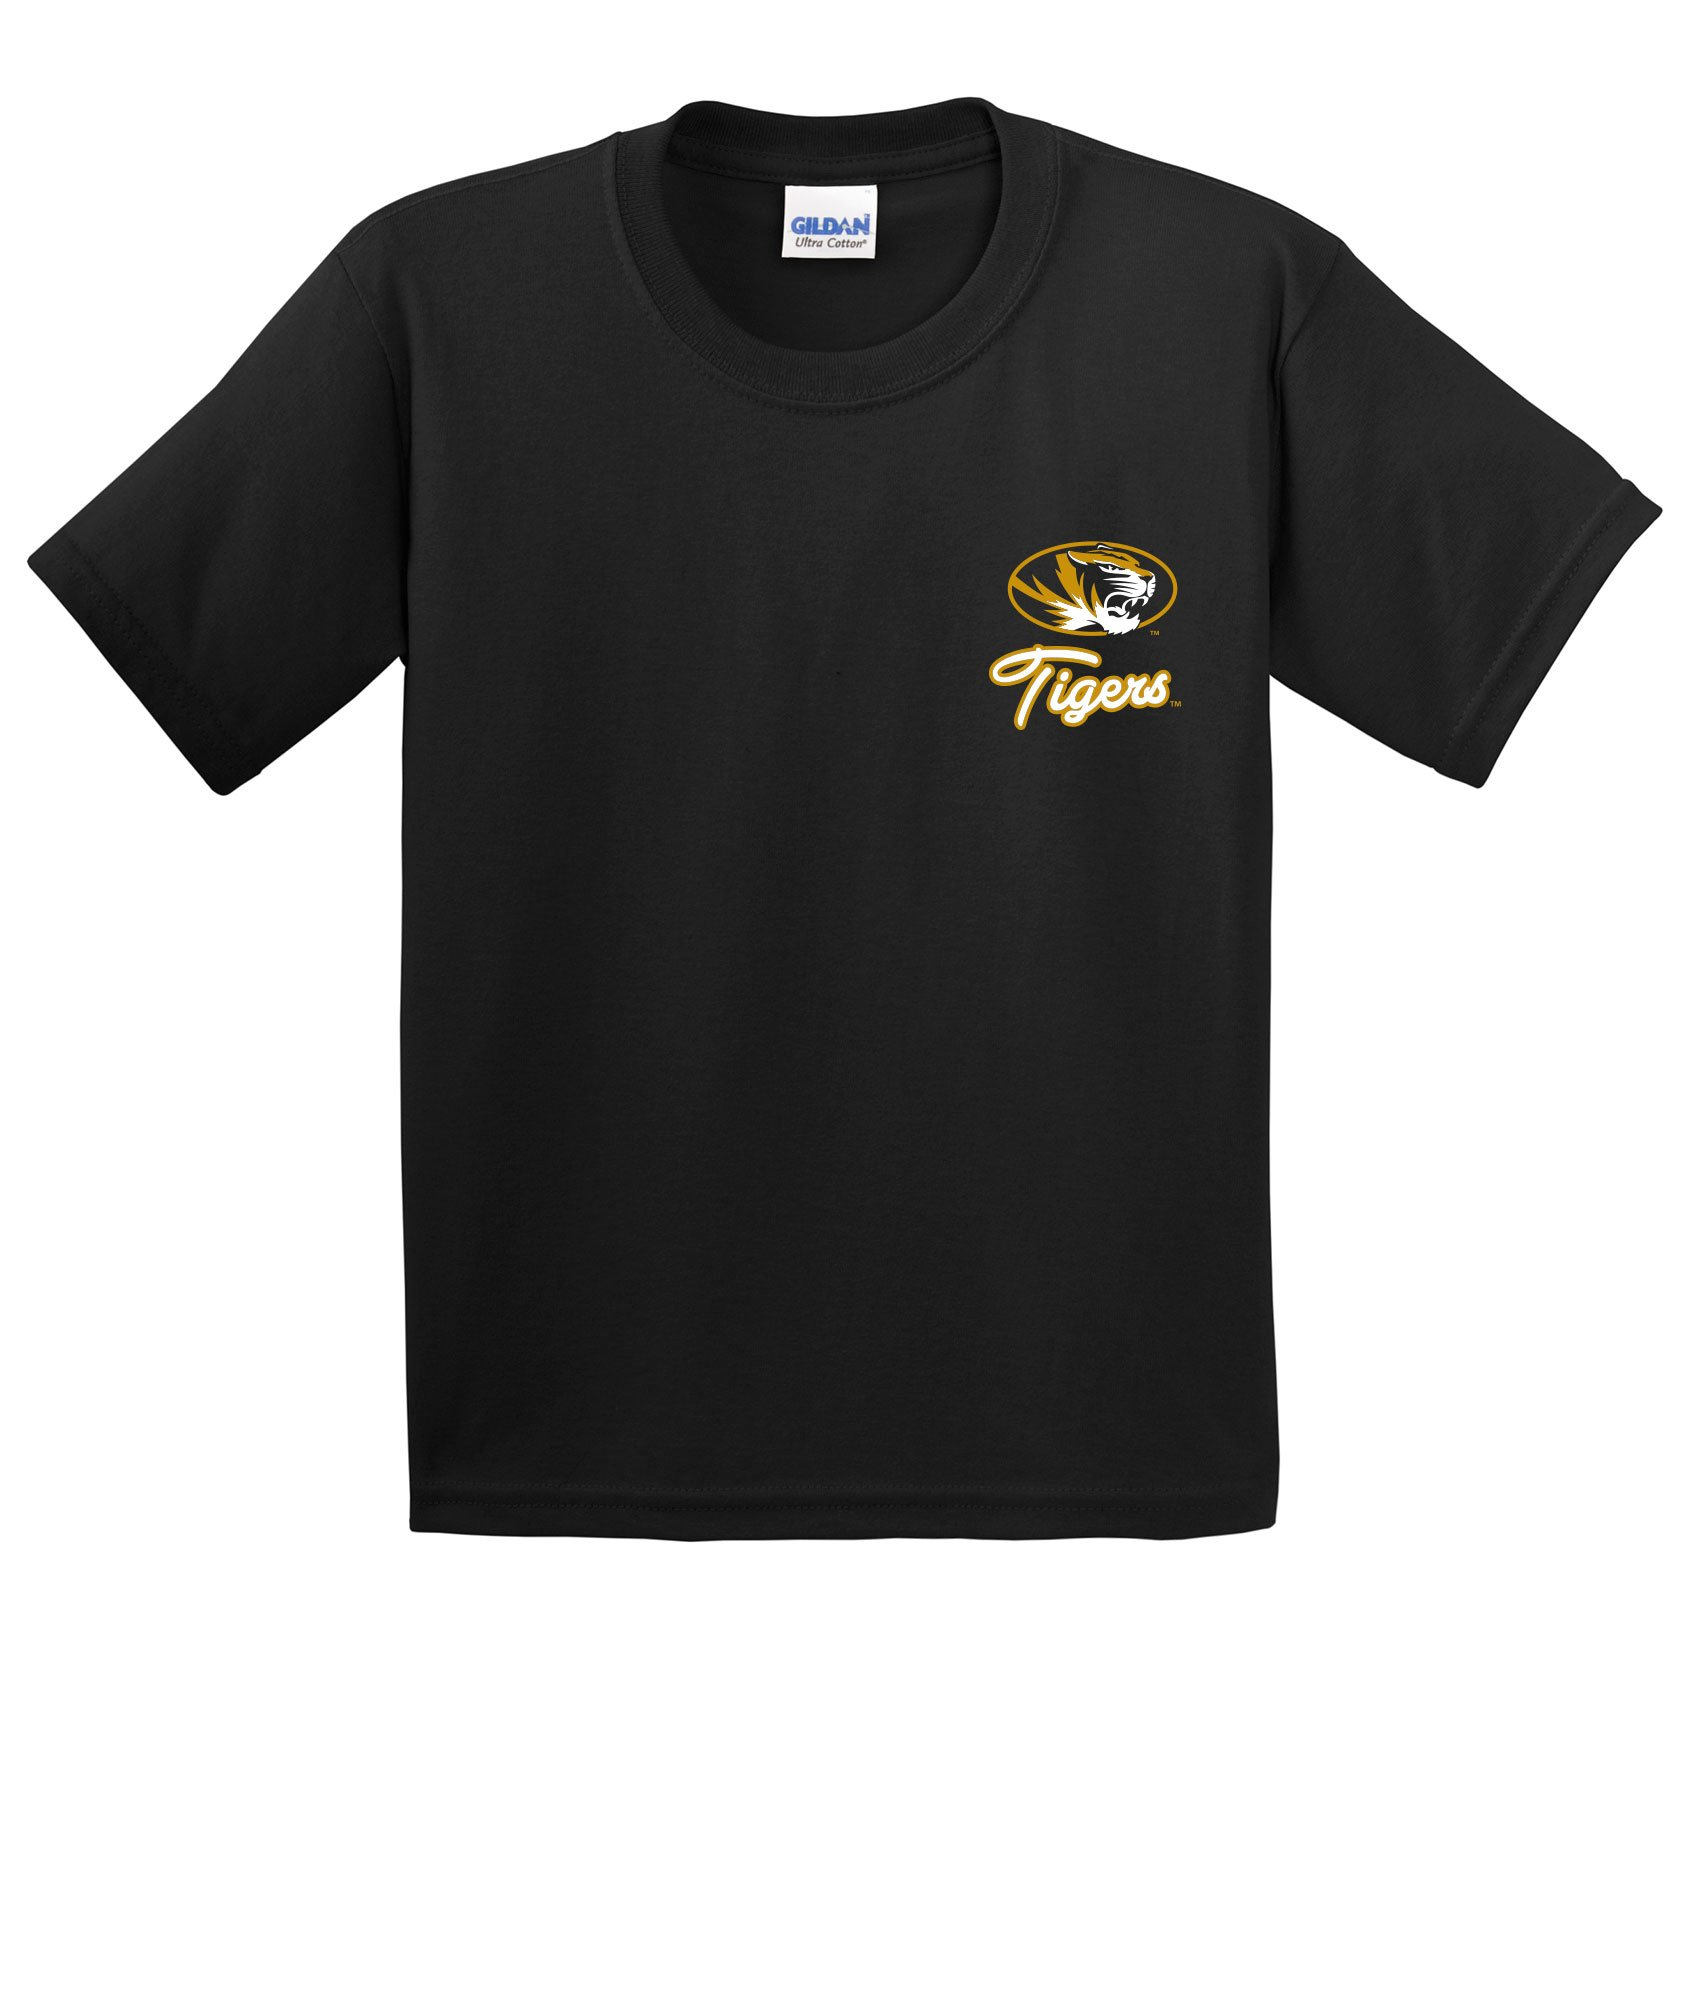 Image One NCAA Cheer Loud Youth Short Sleeve Cotton T-Shirt, Youth X-Large,Black, Missouri Tigers